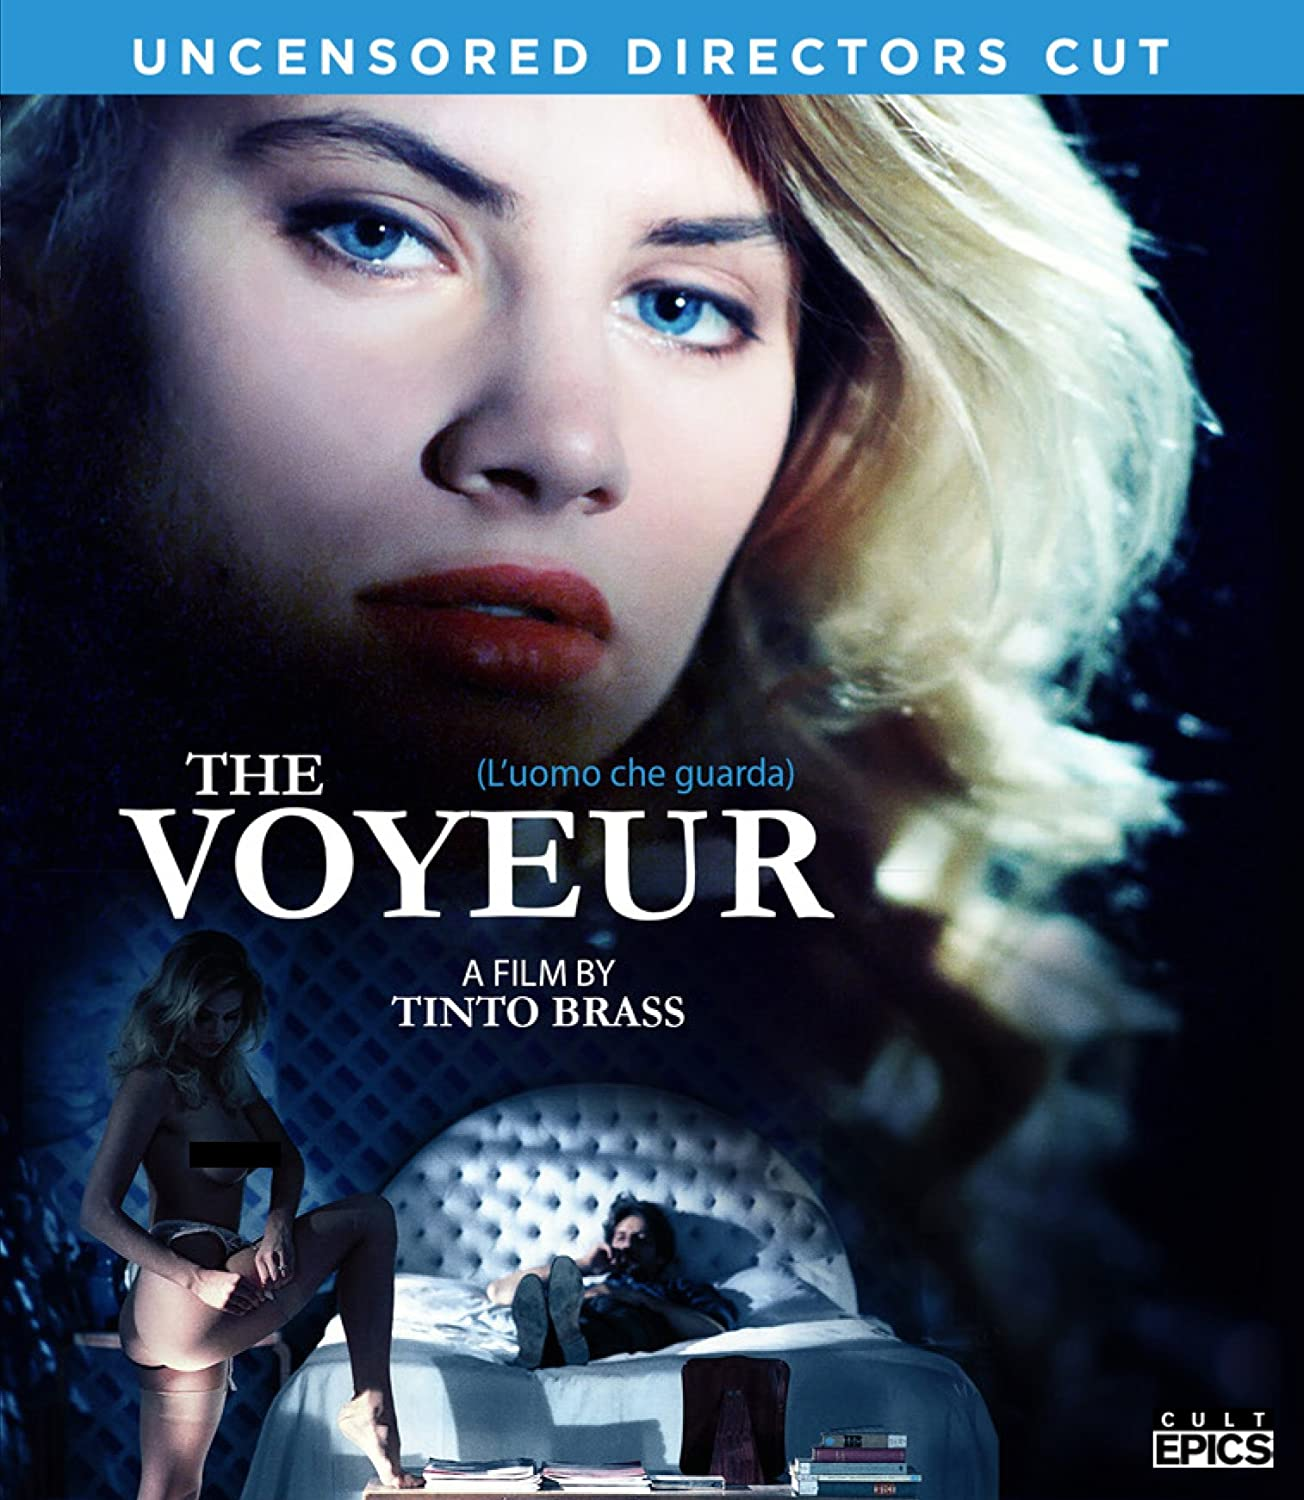 Free voyeur movie